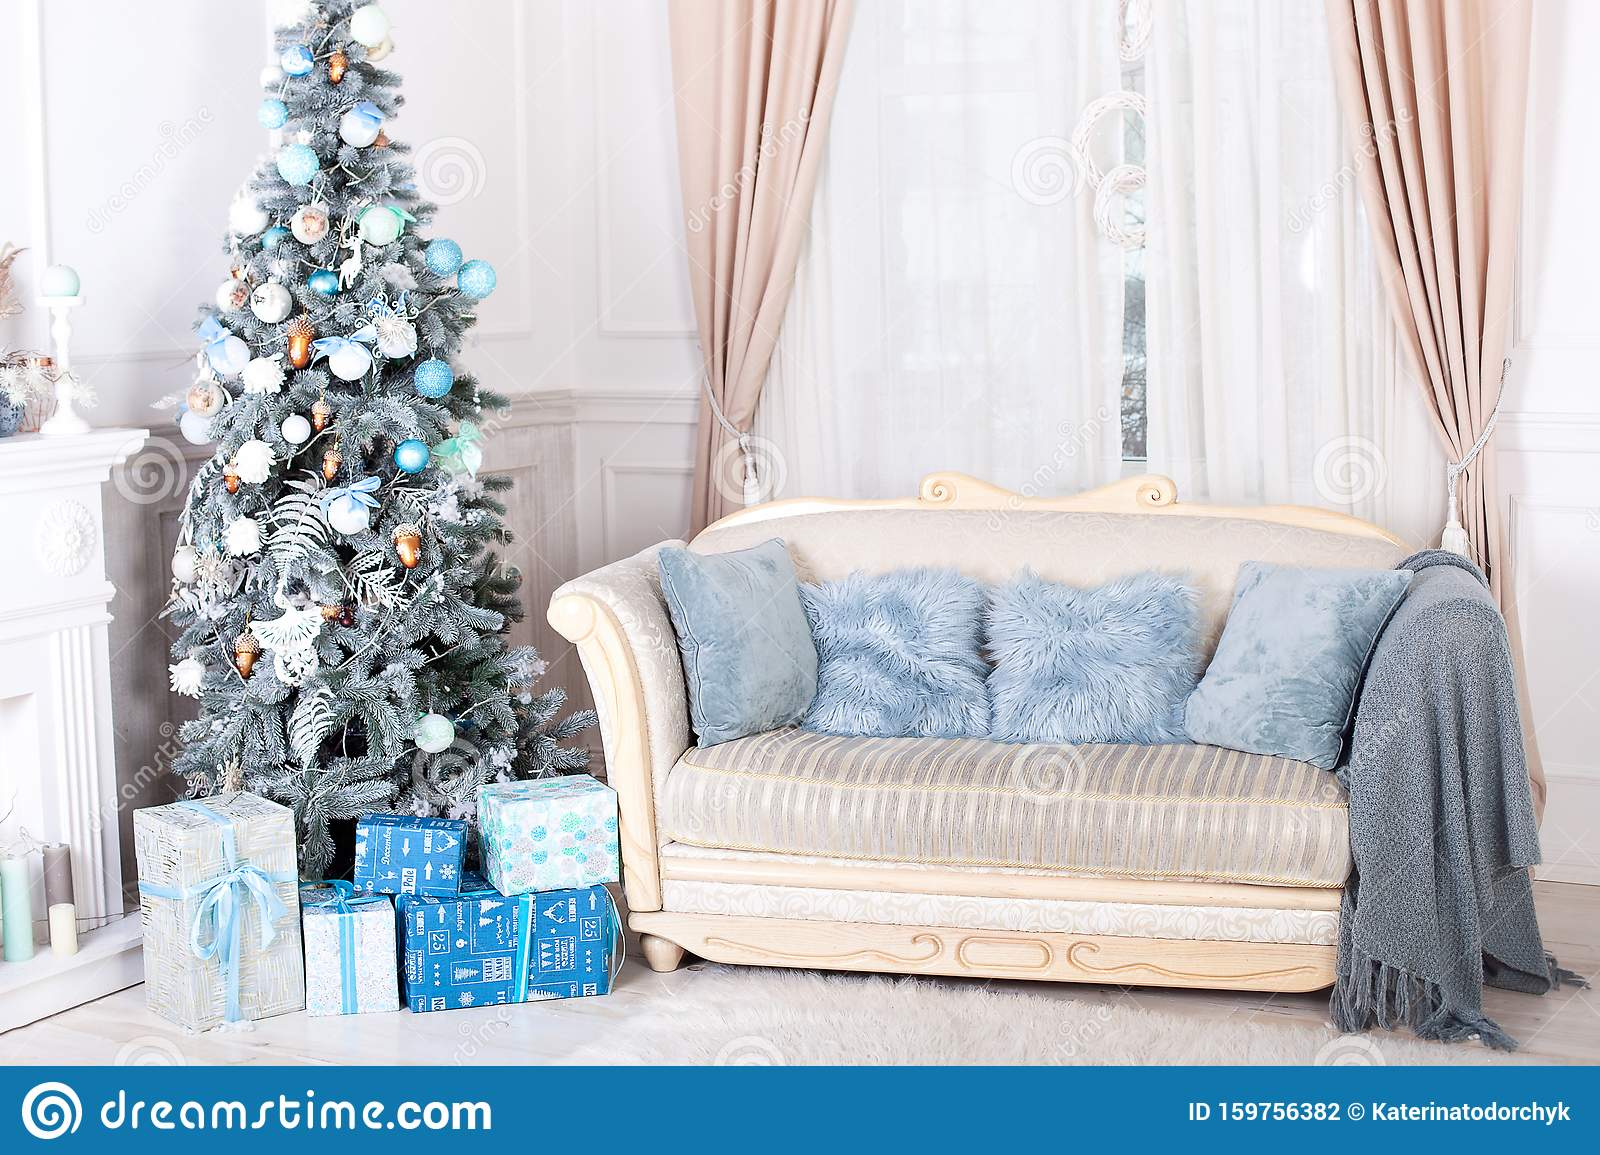 Living Christmas Tree 2020 New Year 2020. Merry Christmas, Happy Holidays. Stylish Living